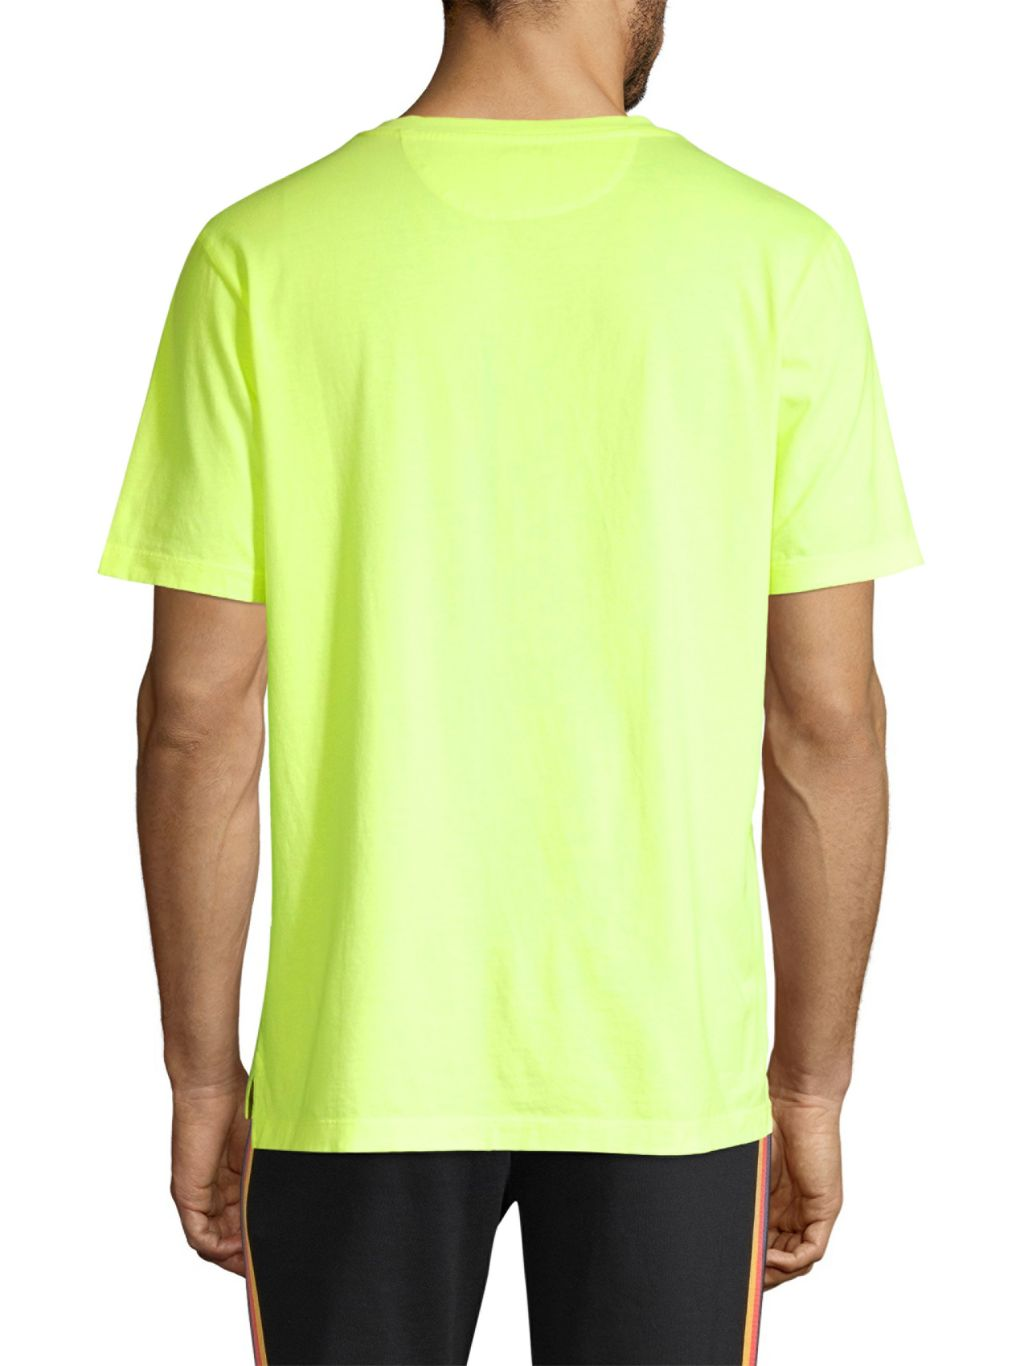 Paul Smith Never Assume Graphic T-Shirt